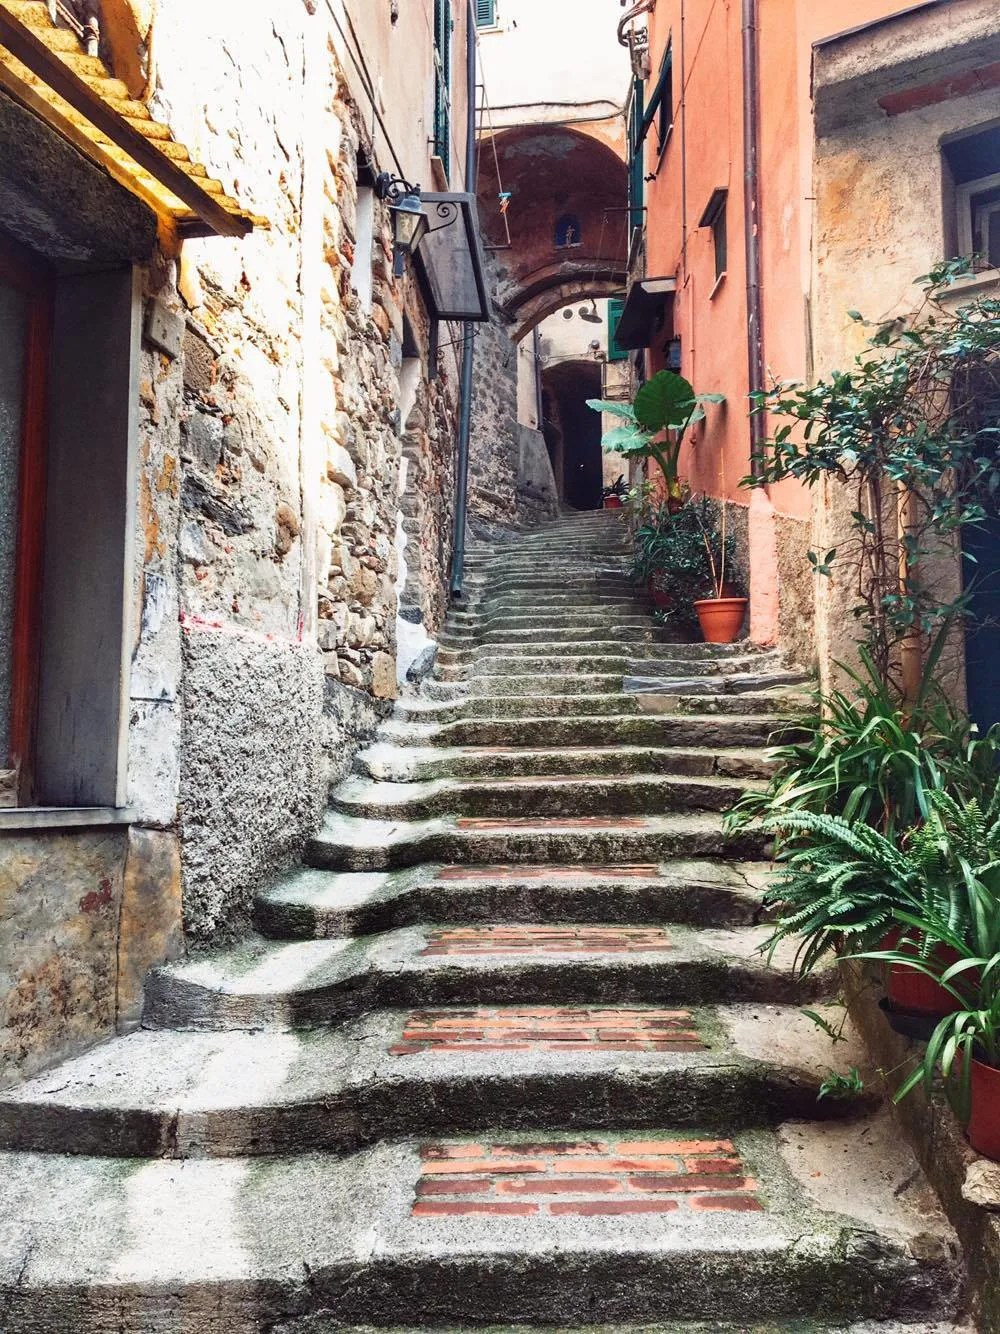 Click to find out why my dream visit to Cinque Terre was not at all what I thought it would be.